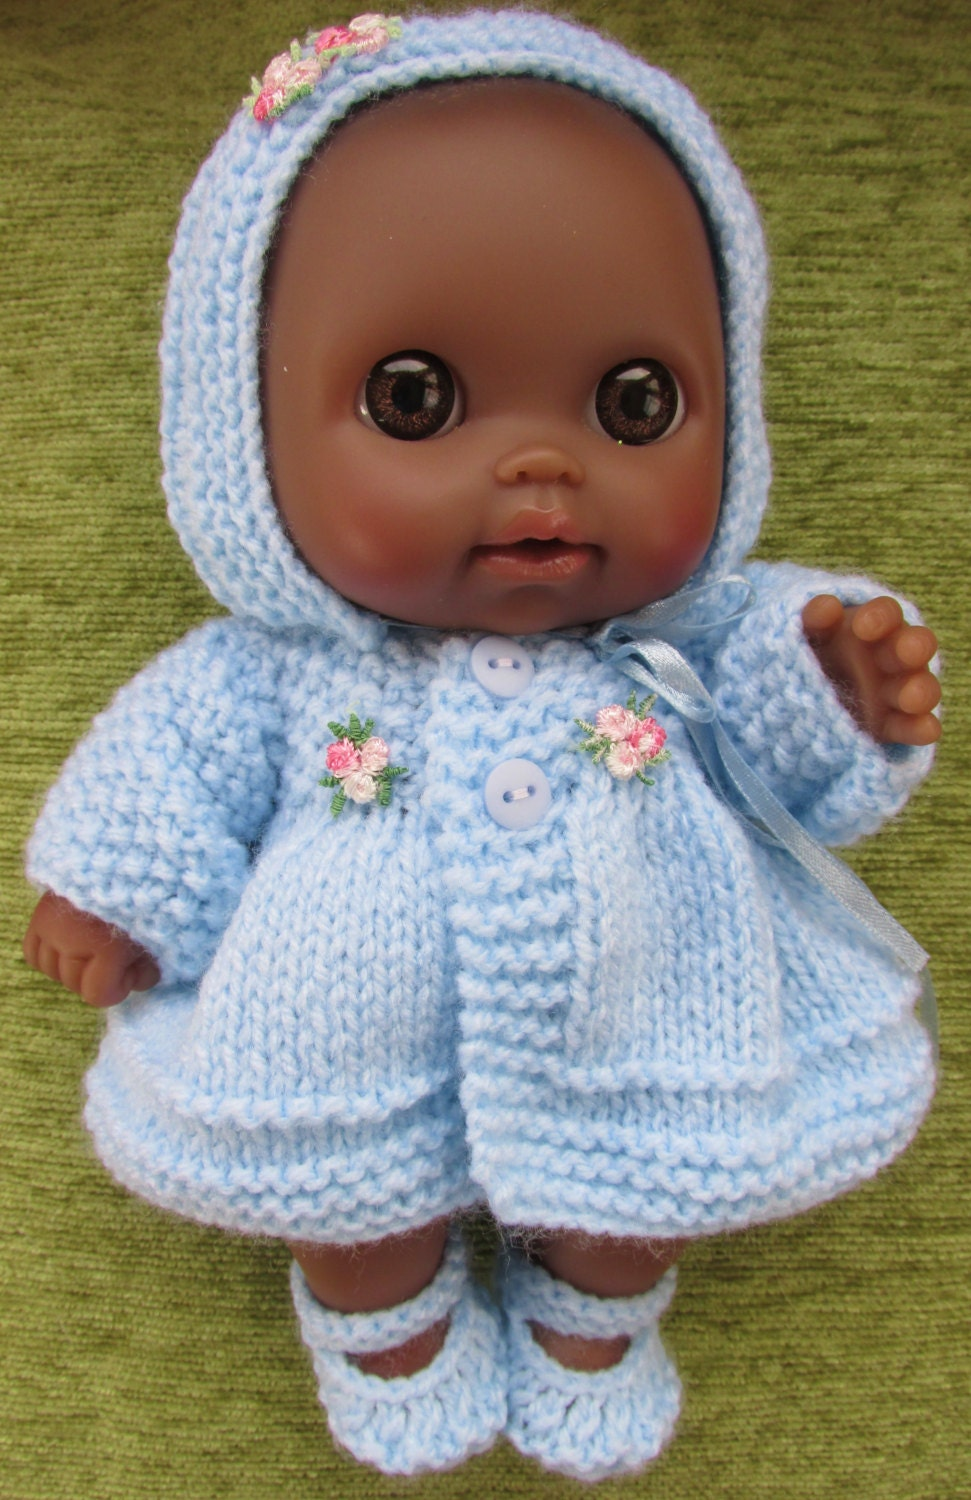 Knitting Patterns For 8 Berenguer Doll Clothes : Knitting Pattern for Berenguer Lil Cutesies Dolls Clothes